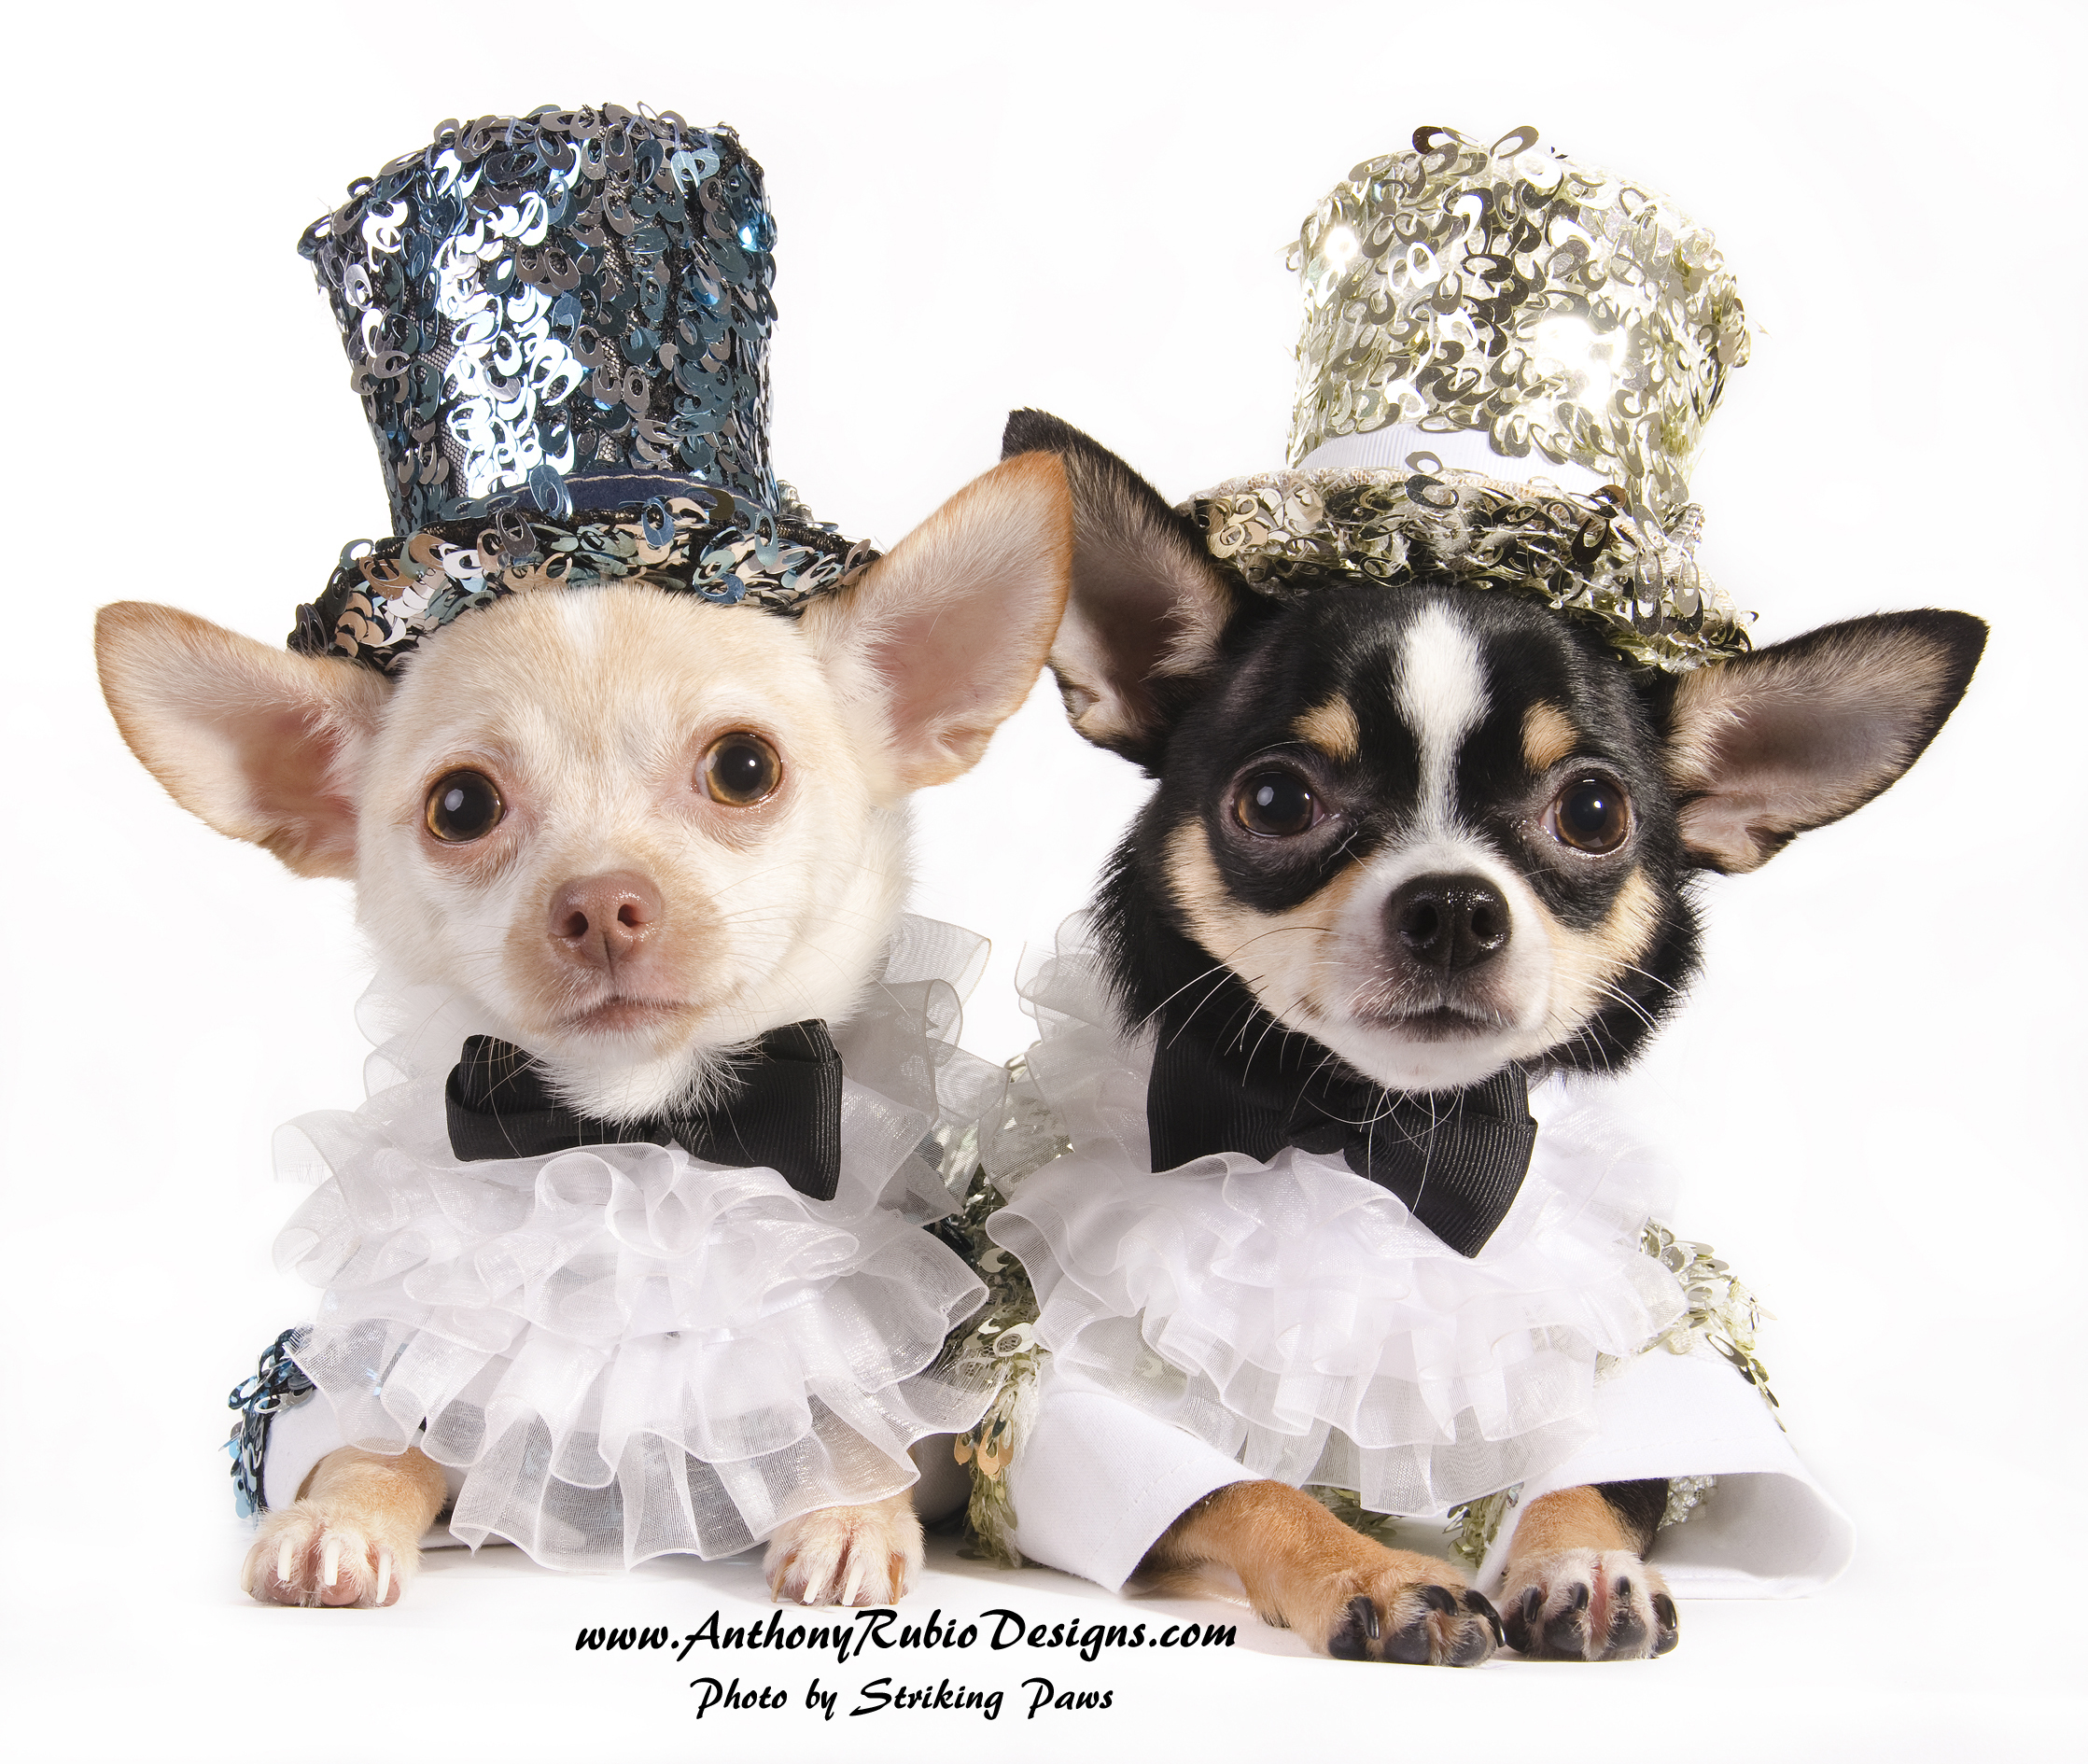 Bogie and Kimba wearing their Puttin' On The Ritz outfits by Anthony Rubio